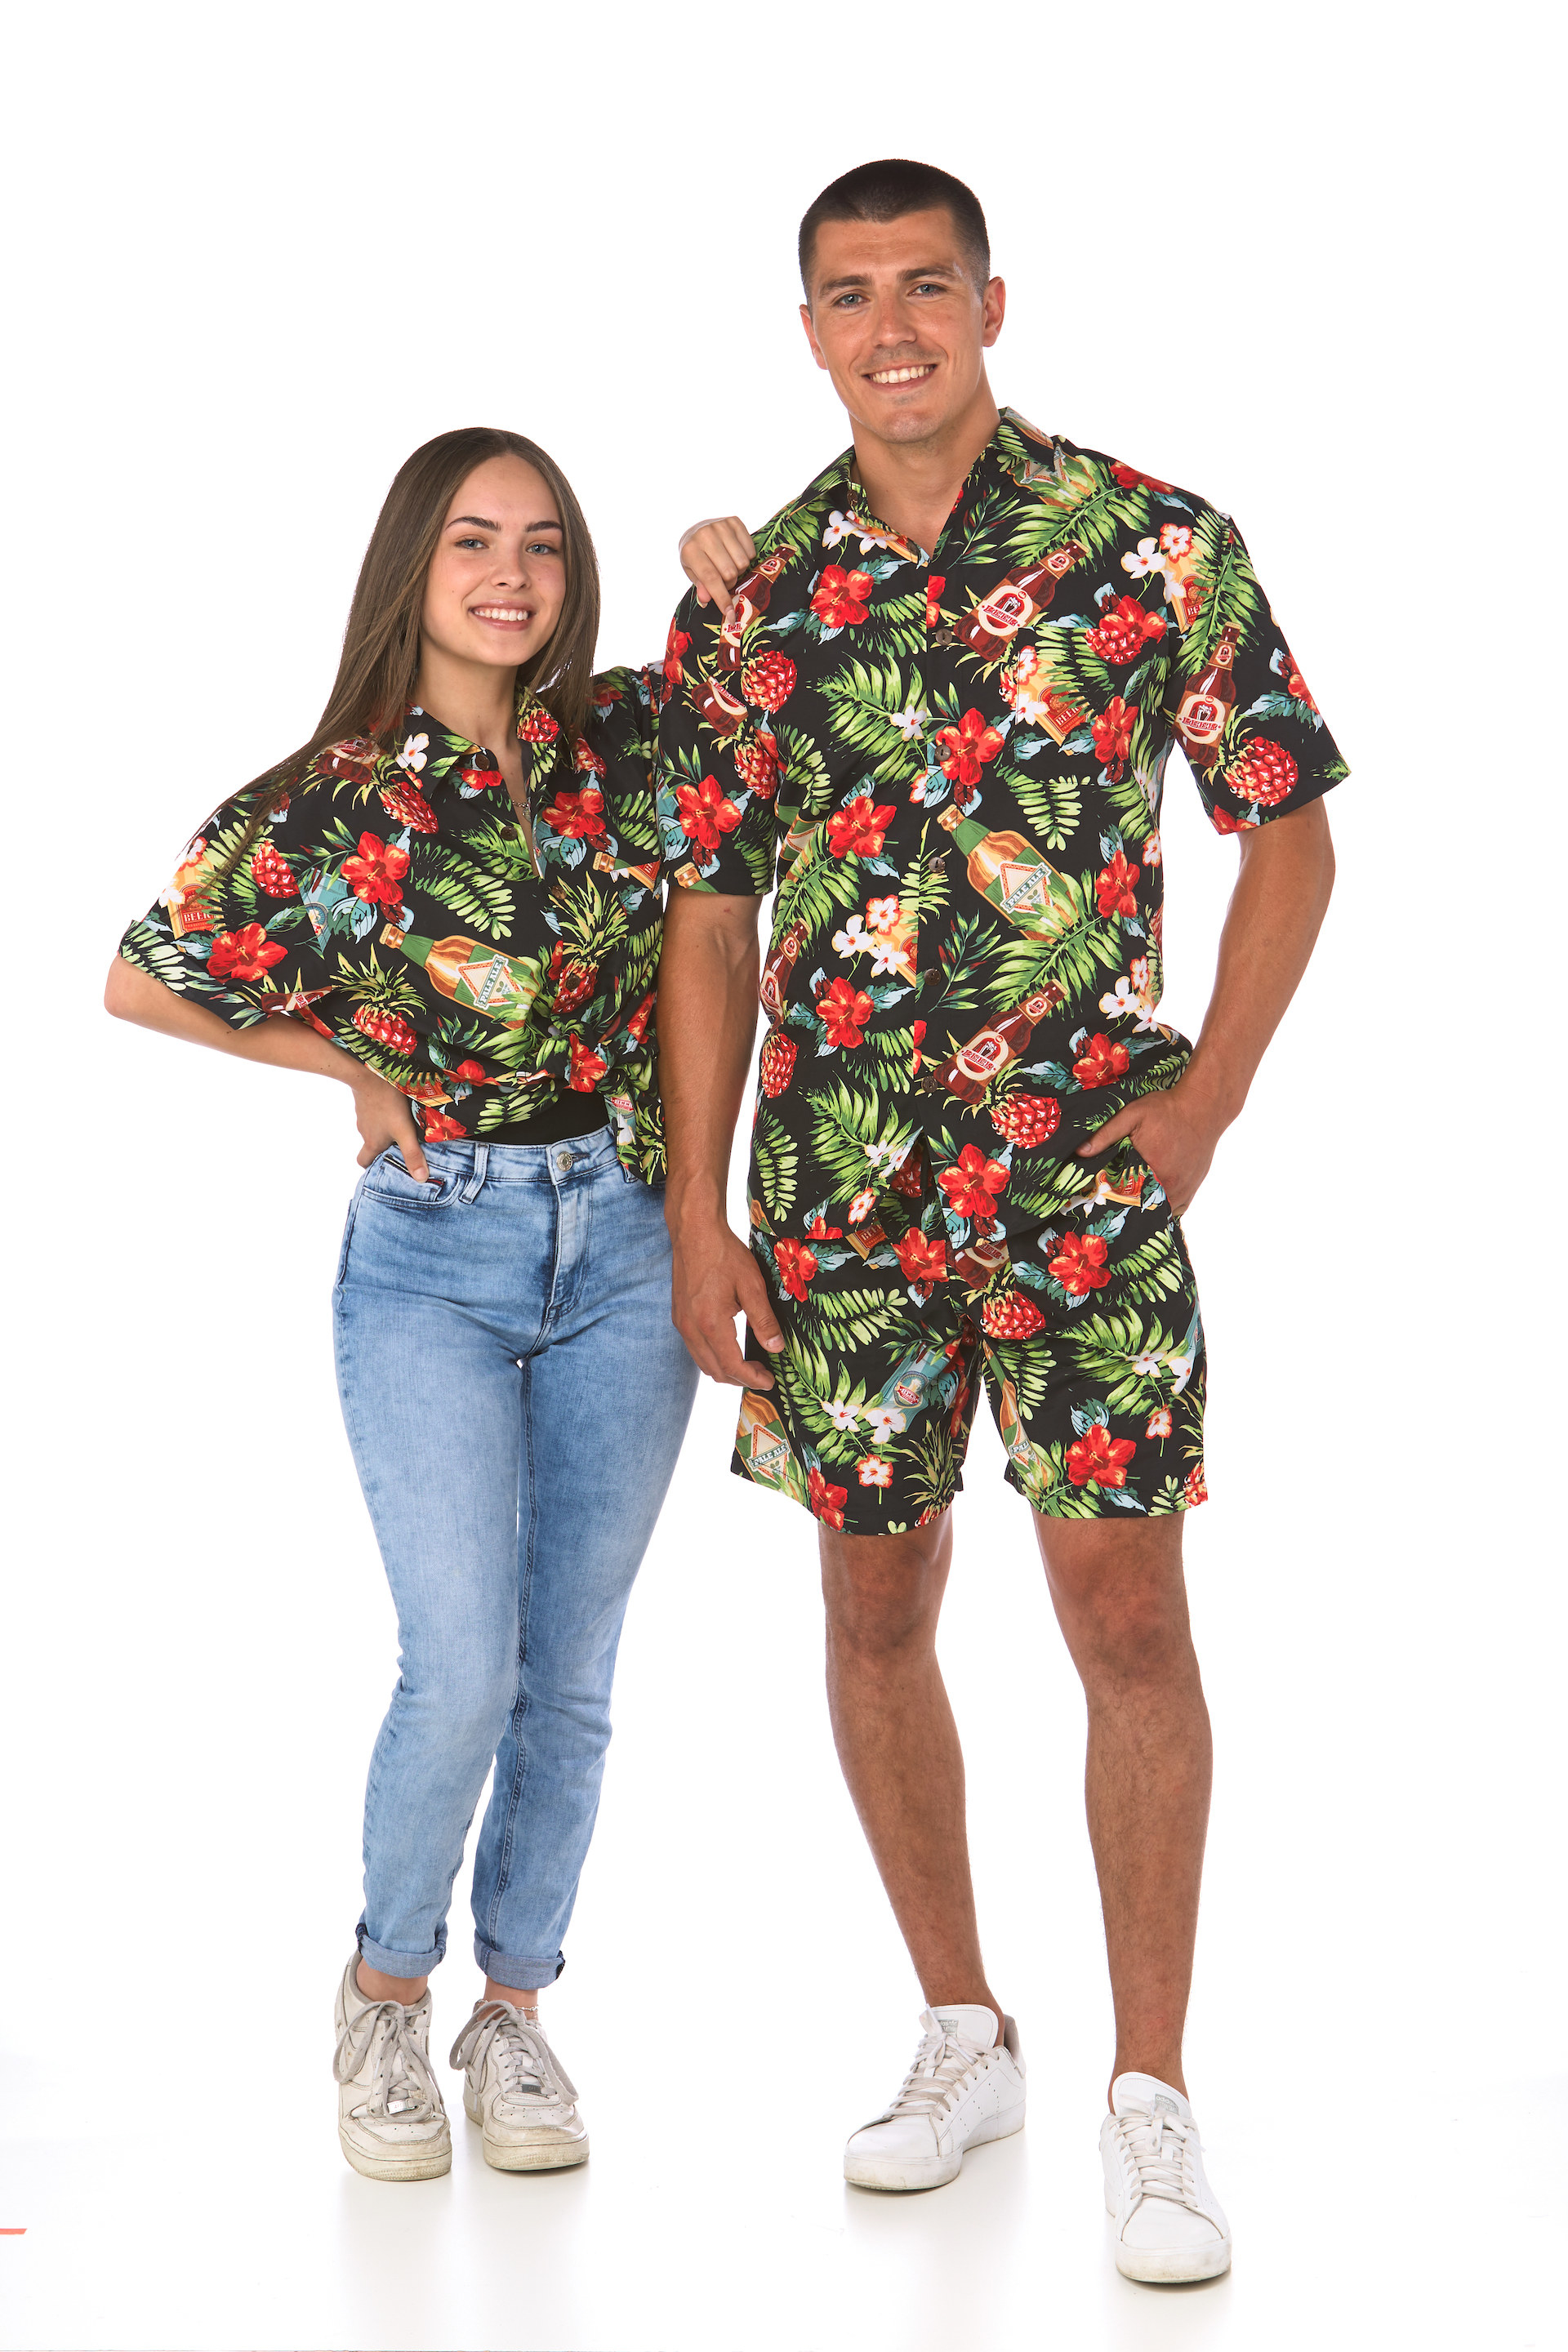 Man and woman in matching shirts with a dark background, palm fronds, flowers and beer